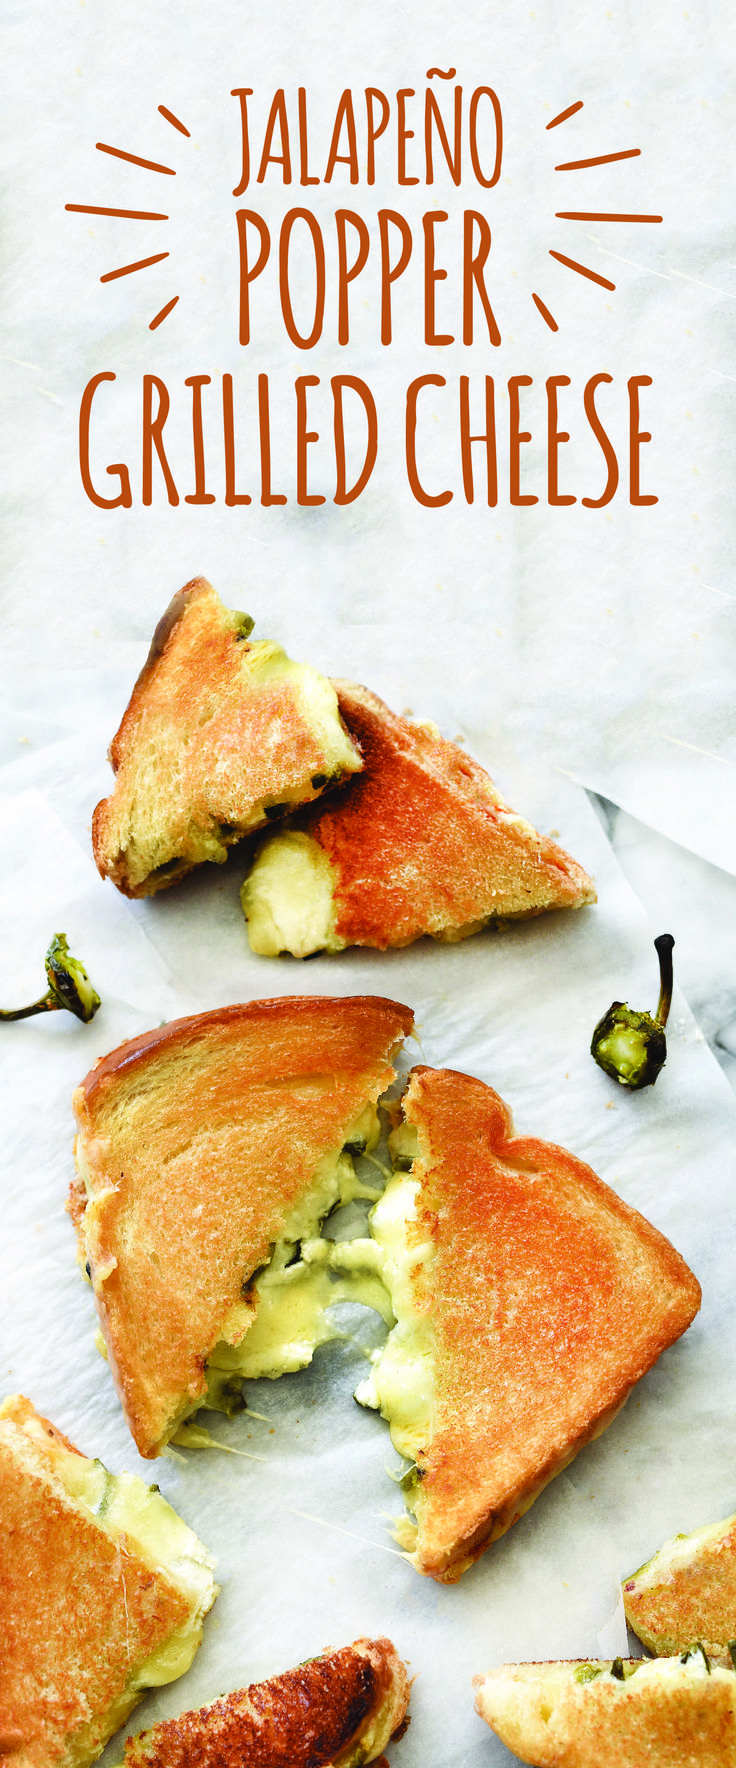 Grilled cheese – not just for kids! A touch of heat in this drool-worthy Jalapeño Popper Grilled Cheese will make grown-ups happy too. Plus, Arla Muenster cheese makes your perfectly toasted grilled cheese #cheesepull simply better. Get the recipe now!